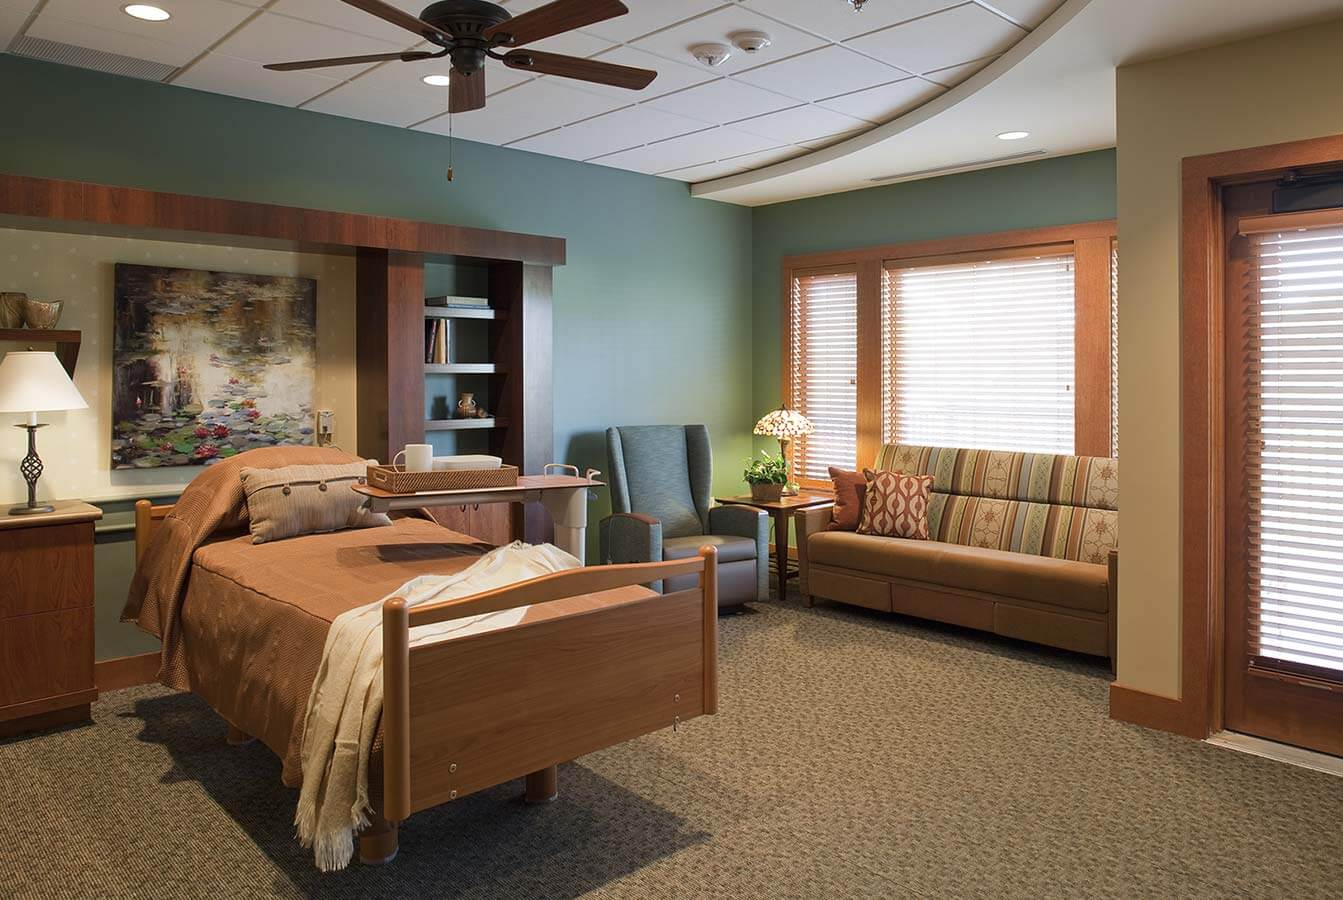 J A Wedum Residential Hospice House Space Planning Senior Living Space Planning Minneapolis